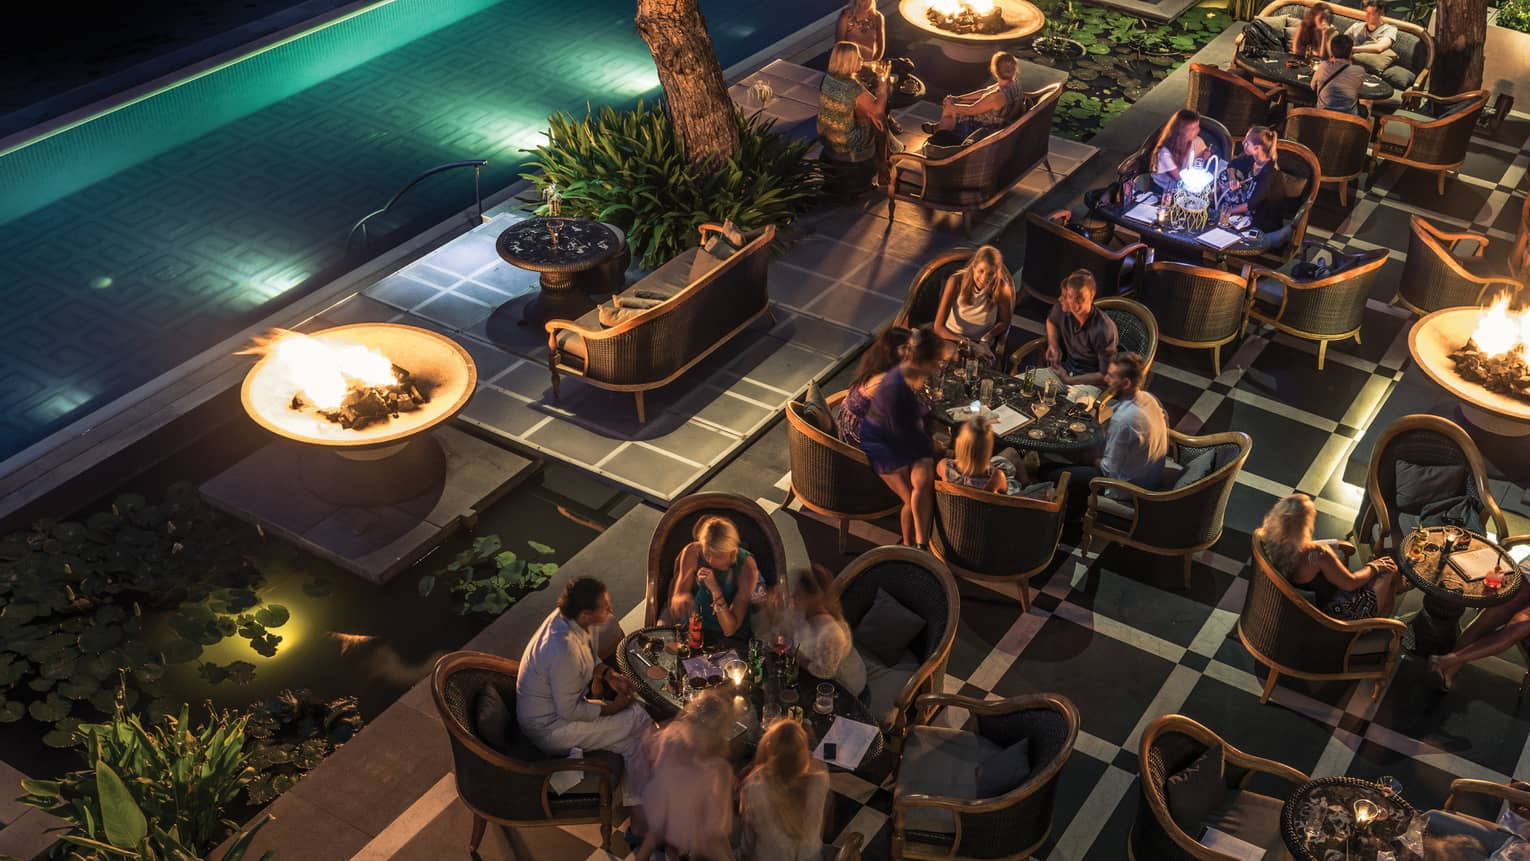 Aerial view of crowded patio at night with guests socializing at candle-lit tables, near illuminated swimming pool